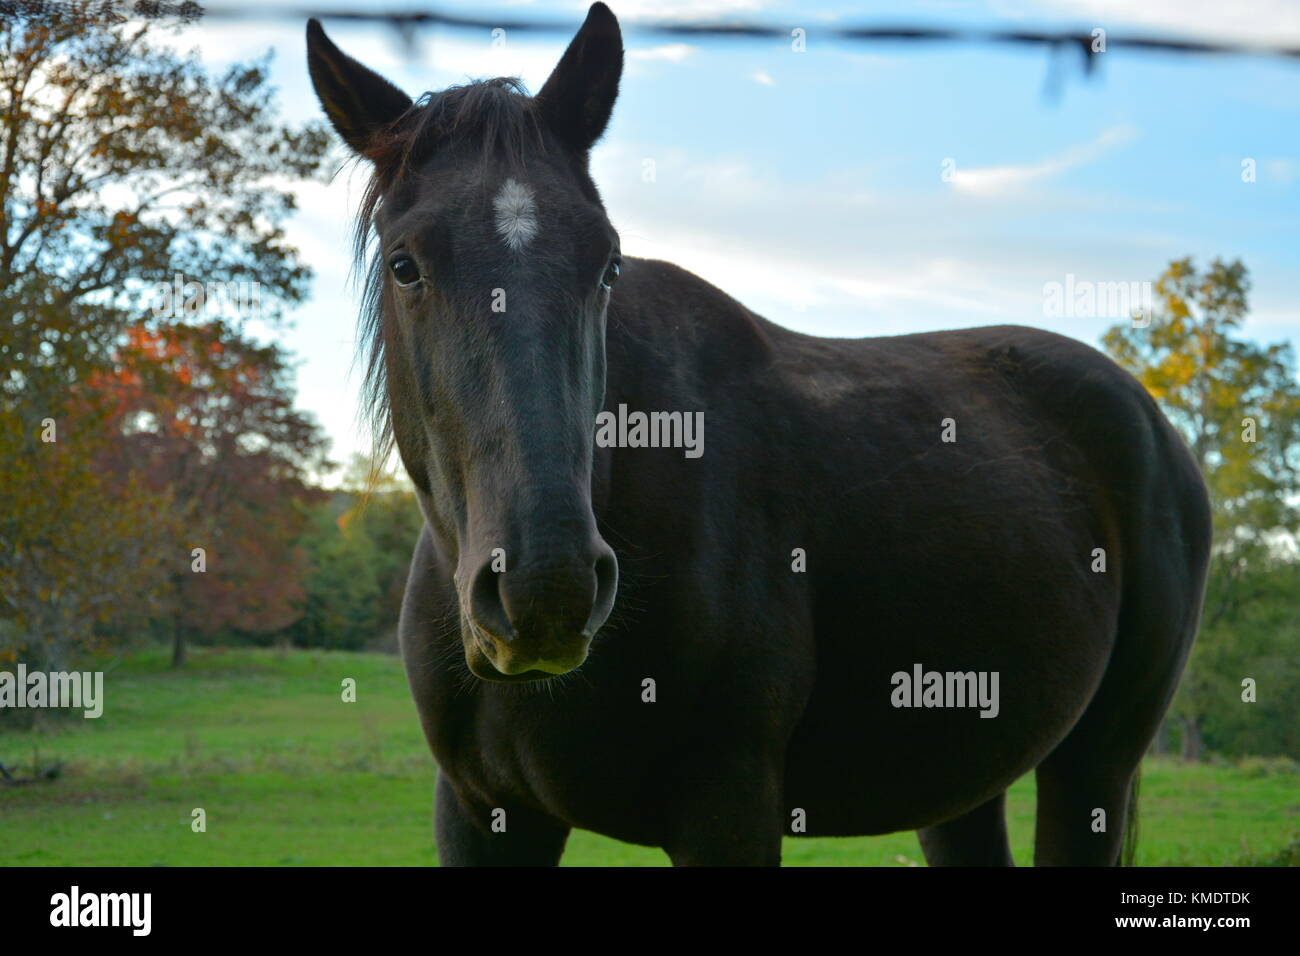 A vigilant gelding watches tourists feed apples to his friends before deciding if he's interested. - Stock Image